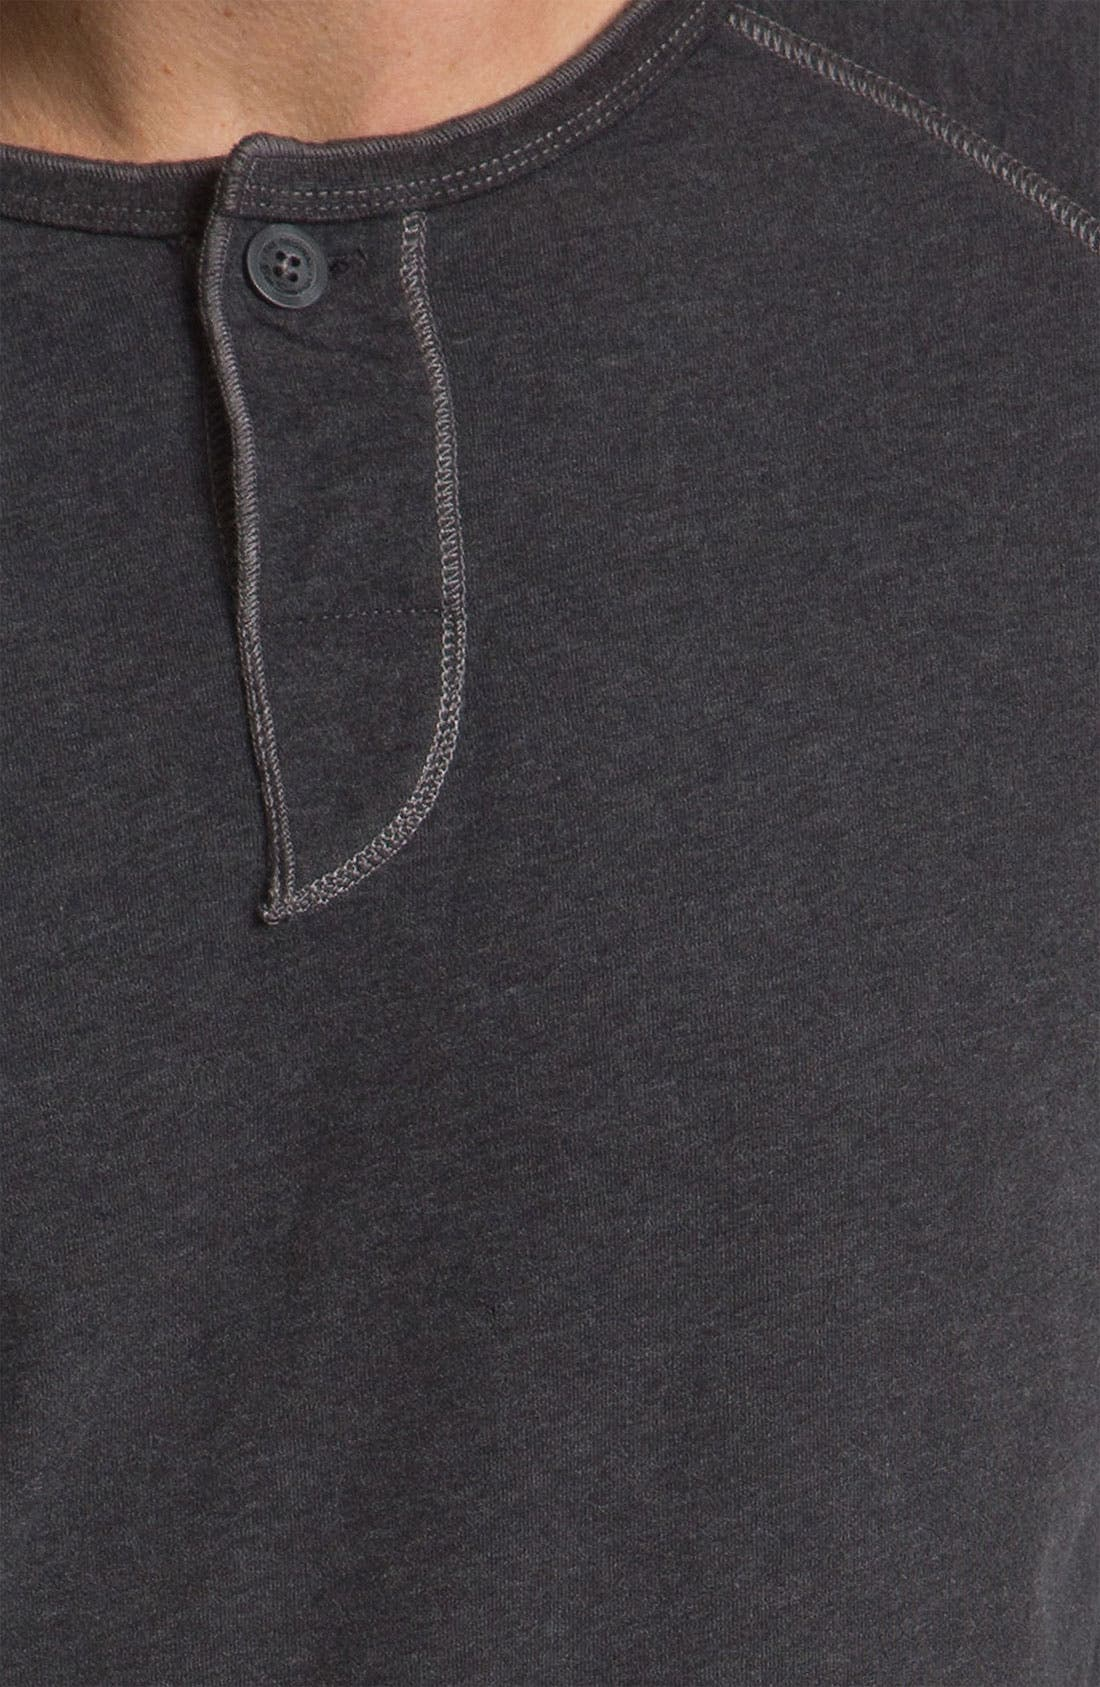 Alternate Image 3  - Ben Sherman Henley Sweatshirt